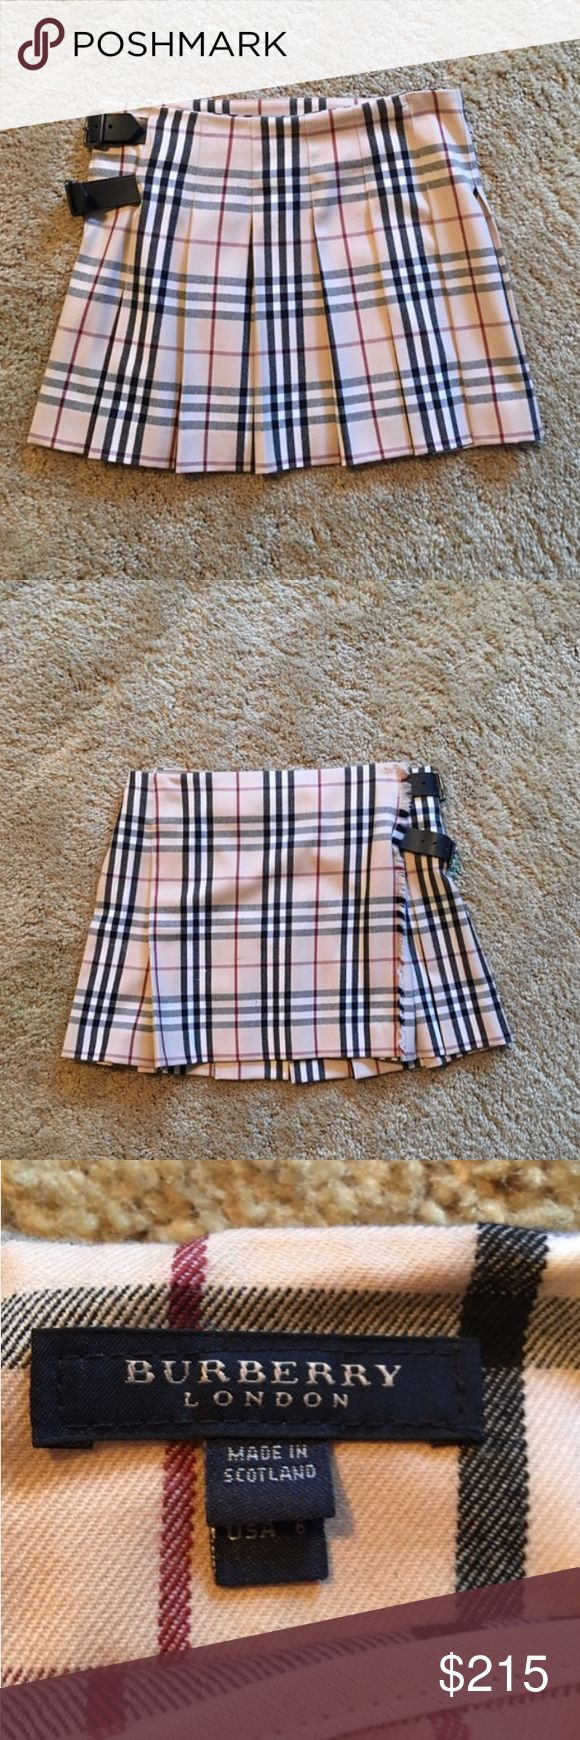 Burberry skirt (authentic) Cute pleated Burberry skirt. Size 6. Excellent condition. Burberry Skirts Mini